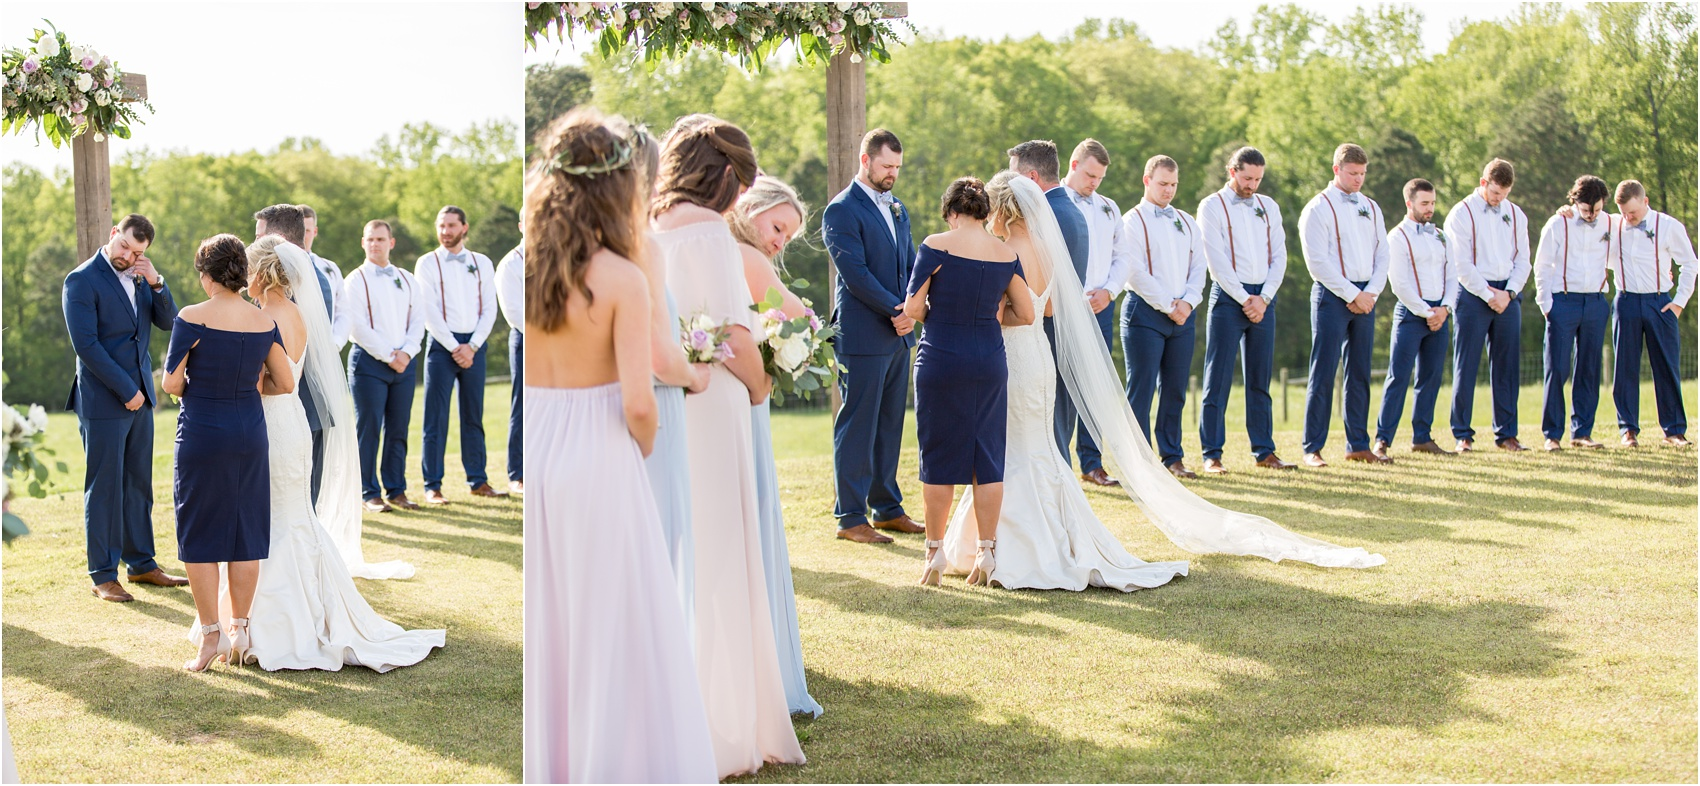 Bleckley Wedding- Sneak Peek-96.jpg